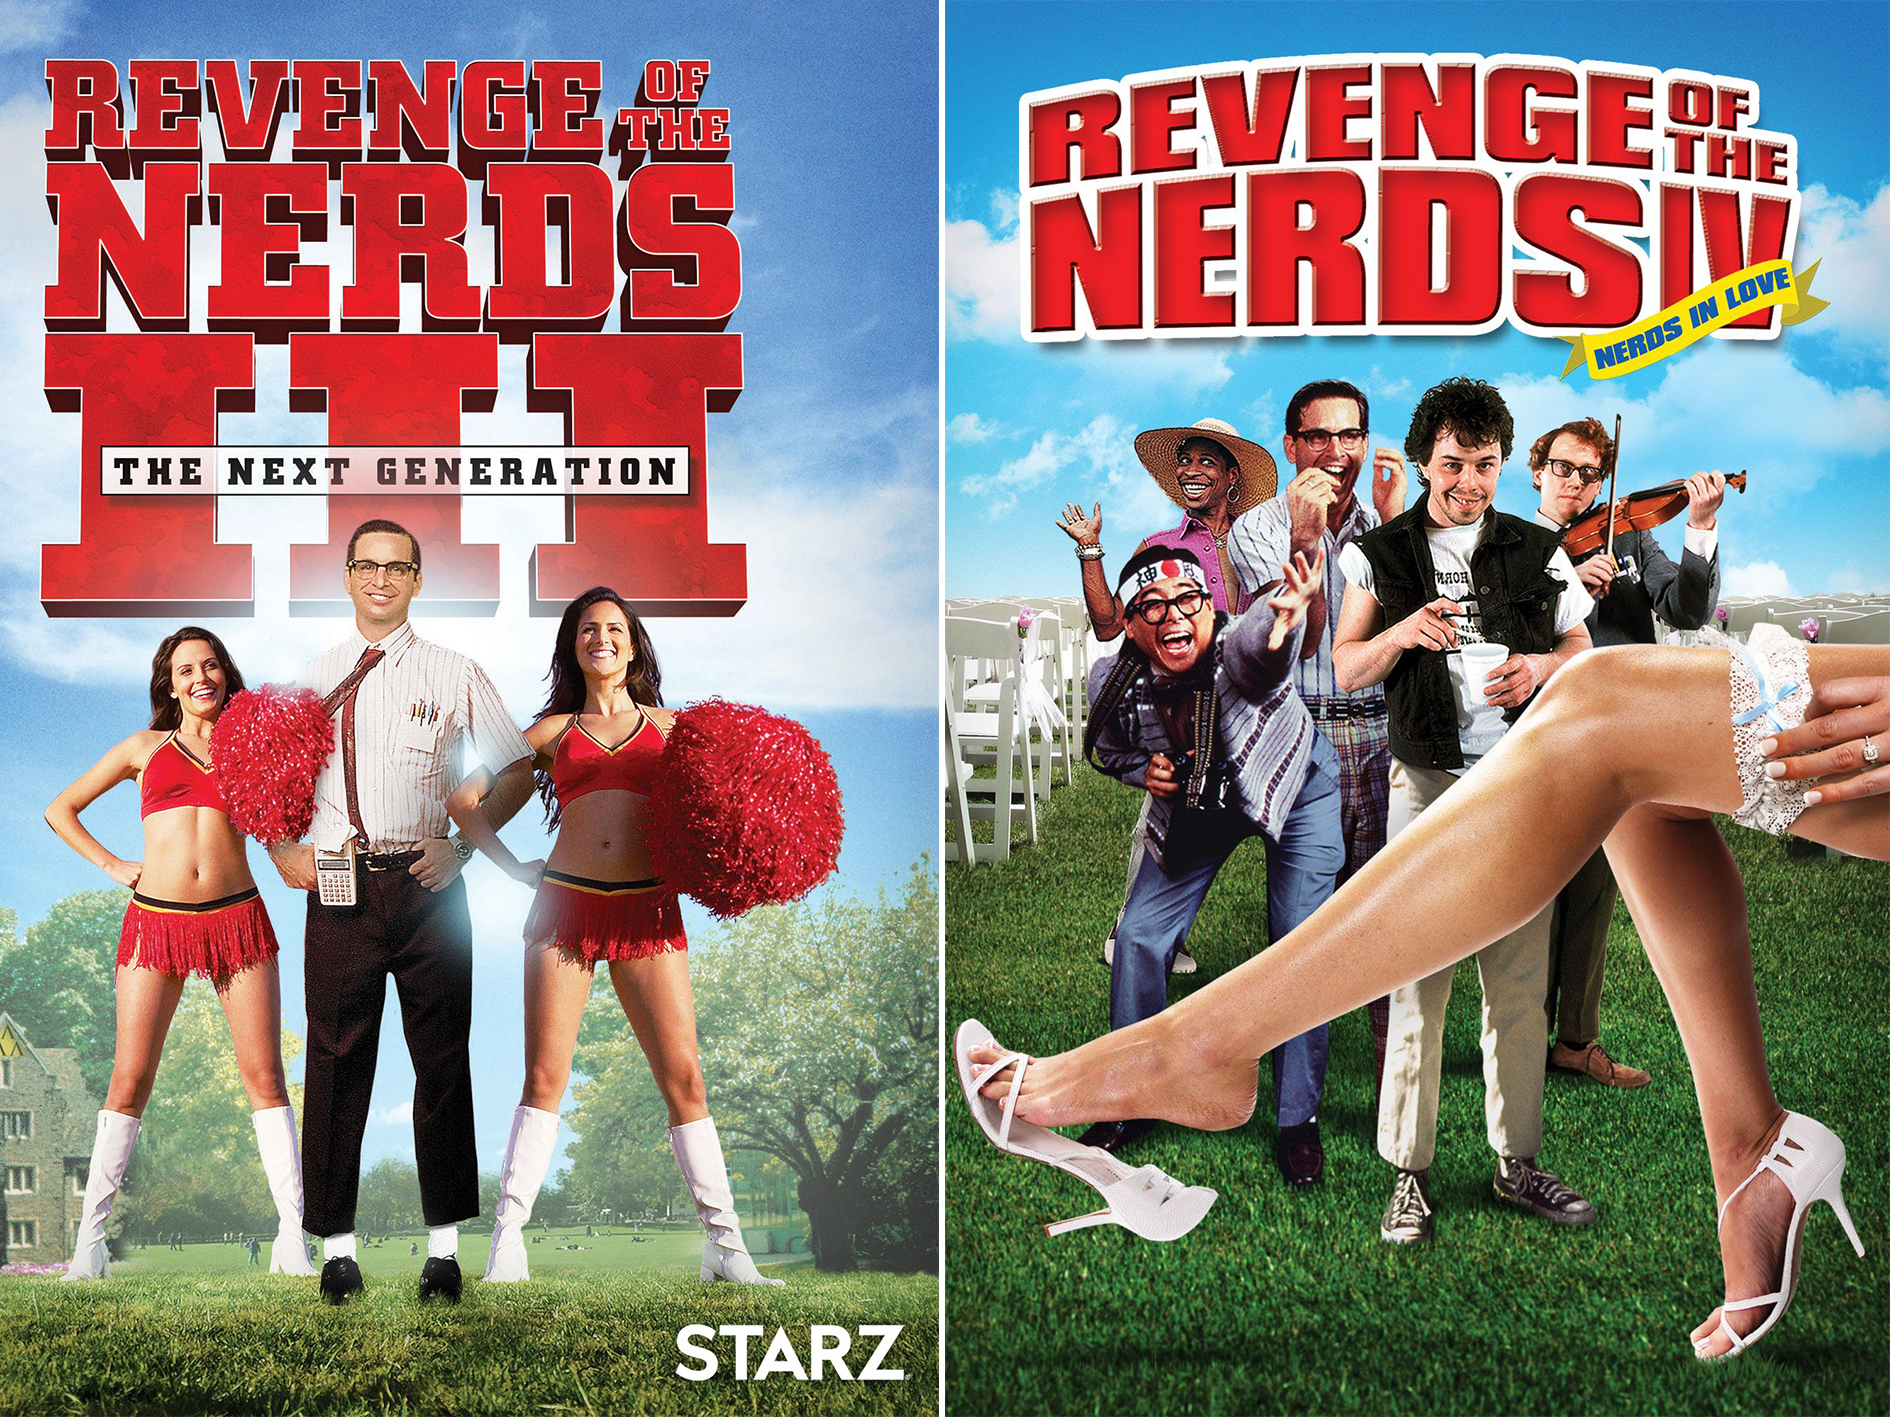 RevengeoftheNerds34 Sequels To 80s Movies You Never Even Knew Existed